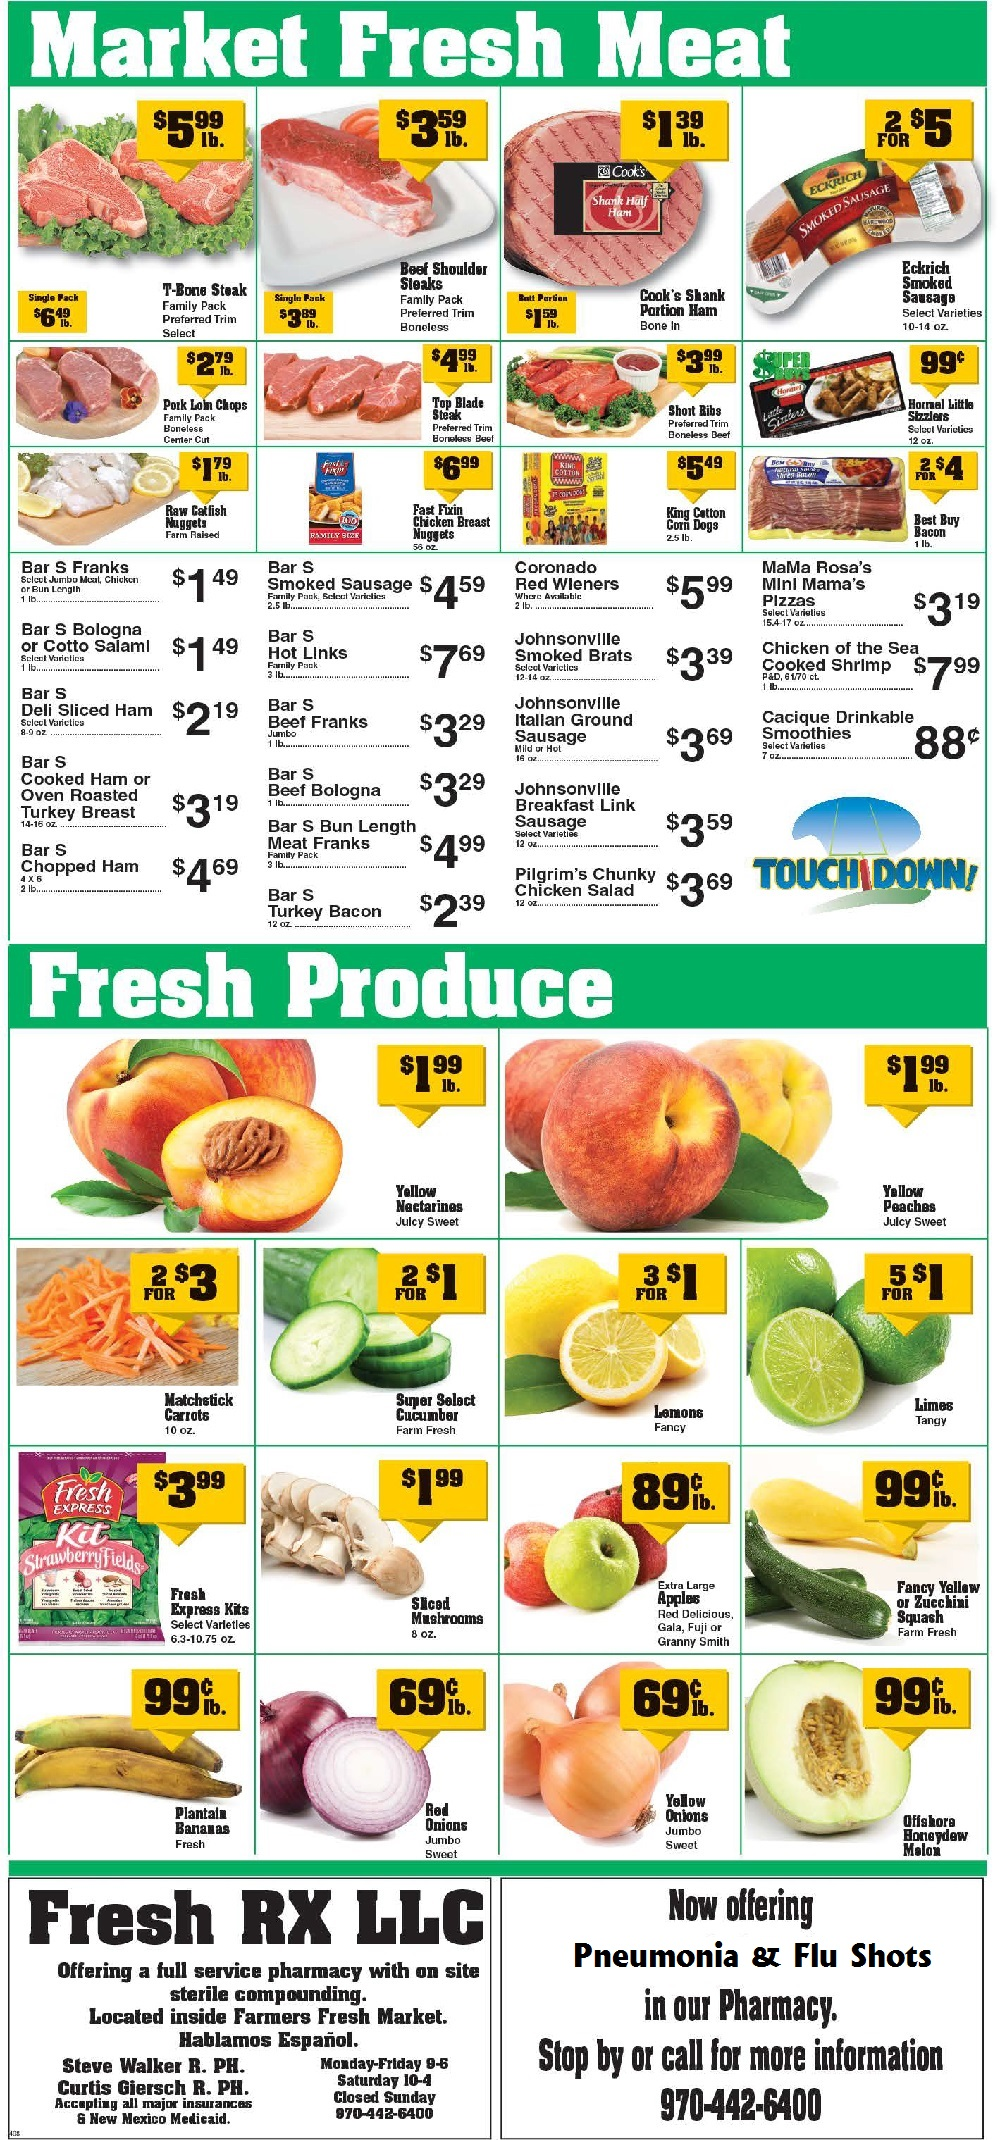 weekly-sales-for-january-11th-17th-pg4